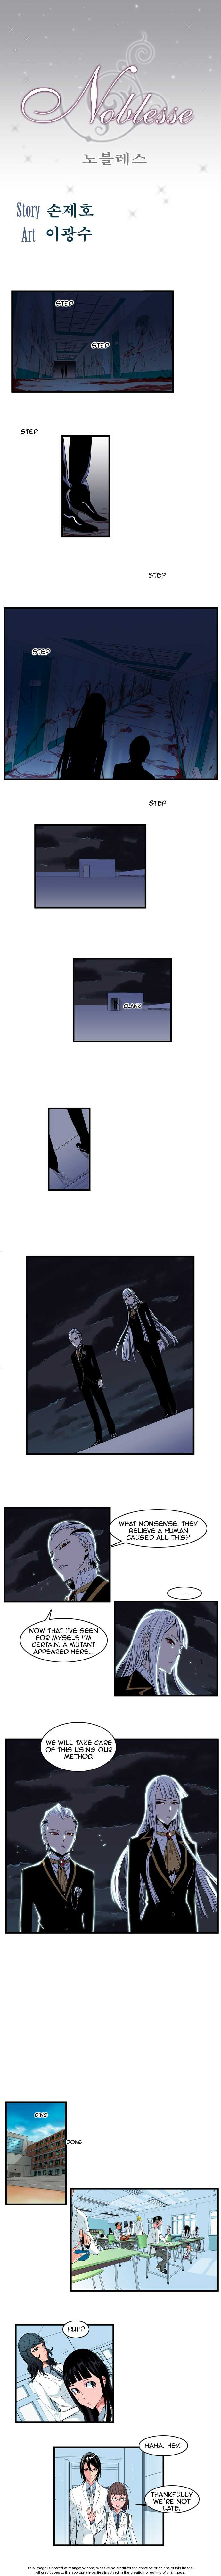 Noblesse 98 Page 1